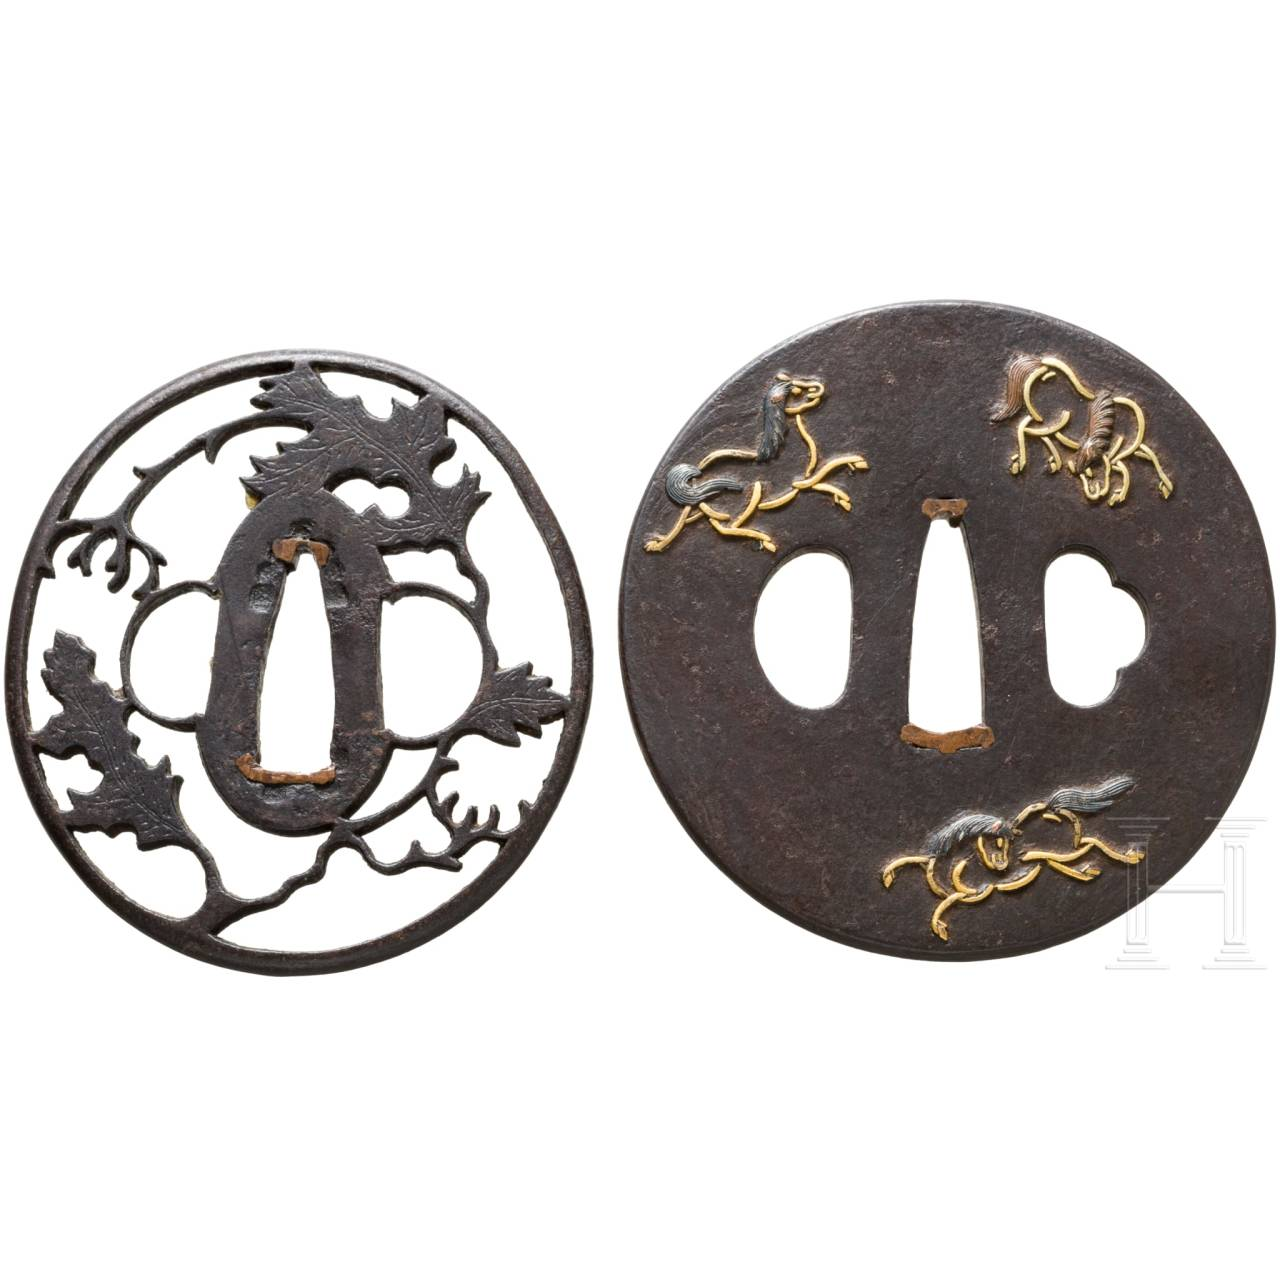 Two Japanese tsubas, Edo/Meiji period